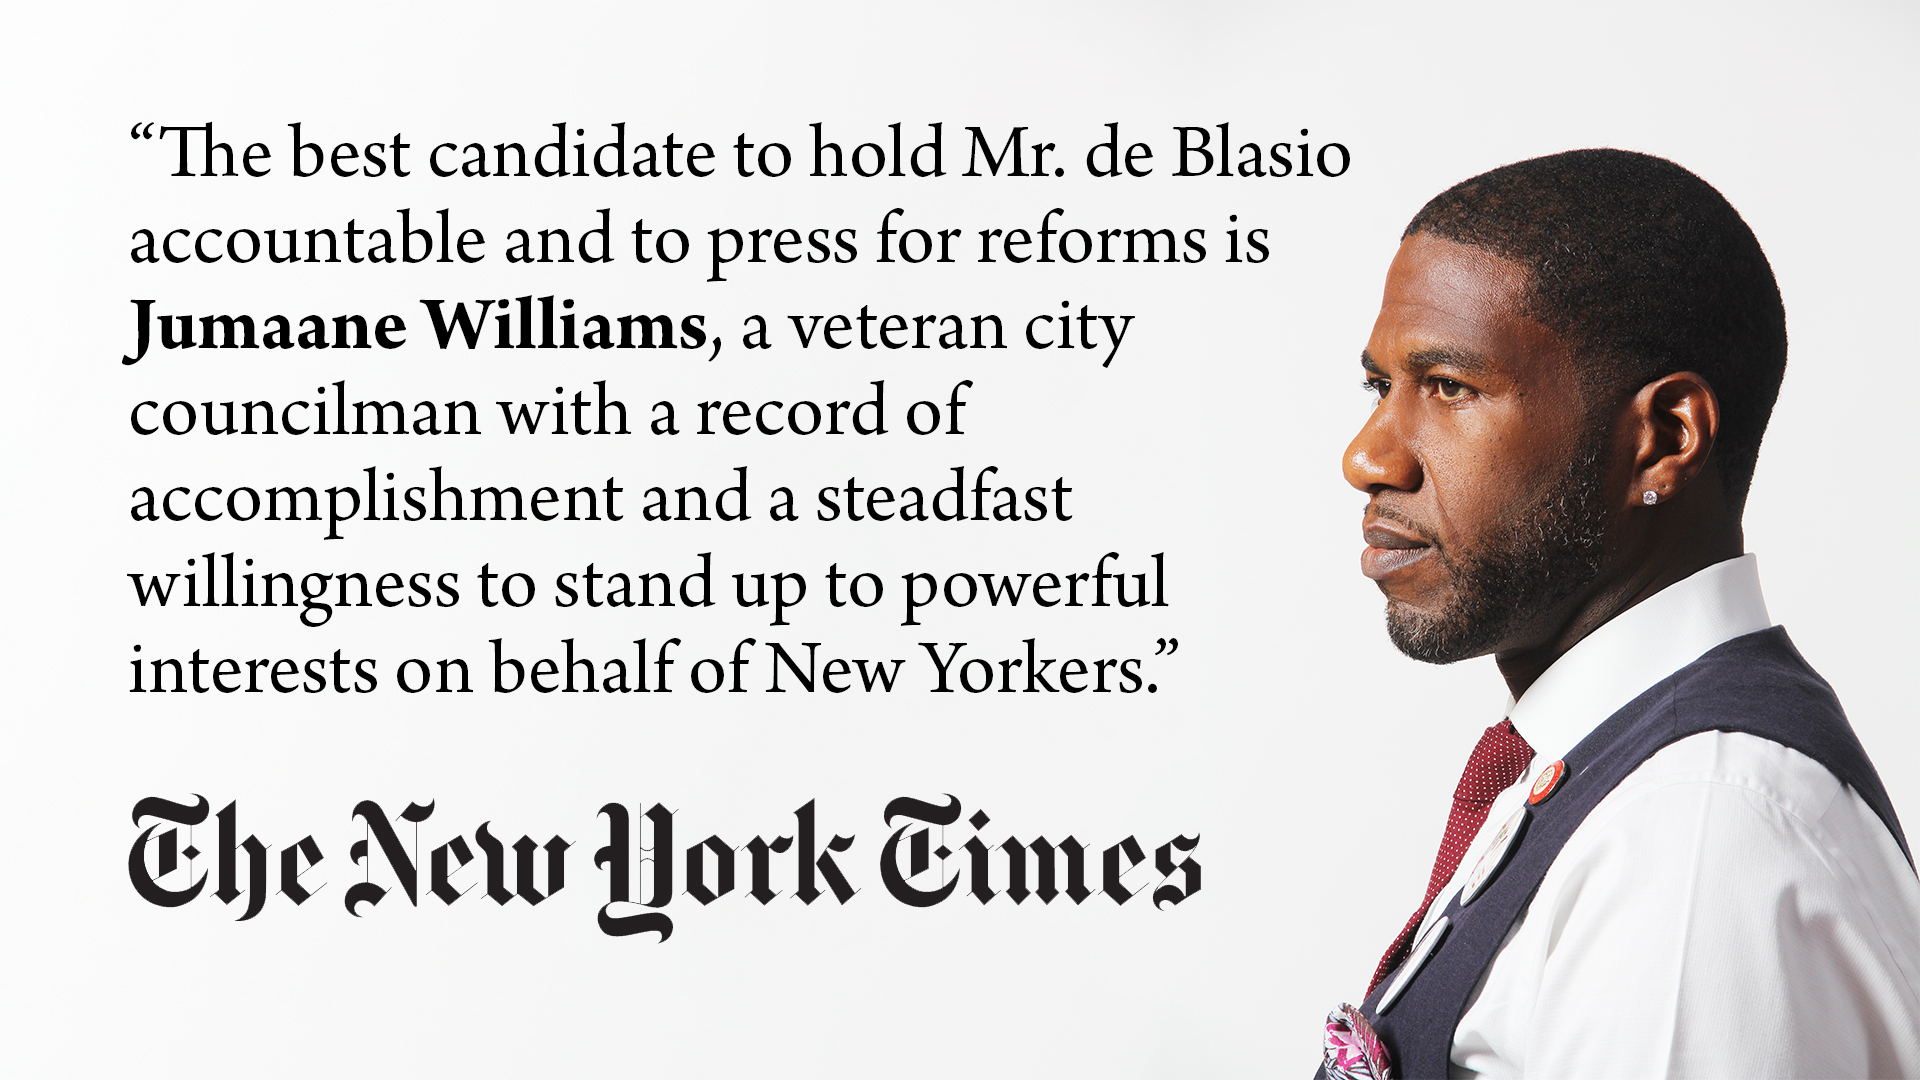 The New York Times has endorsed Jumaane Williams for NYC Public Advocate (February 21, 2019).